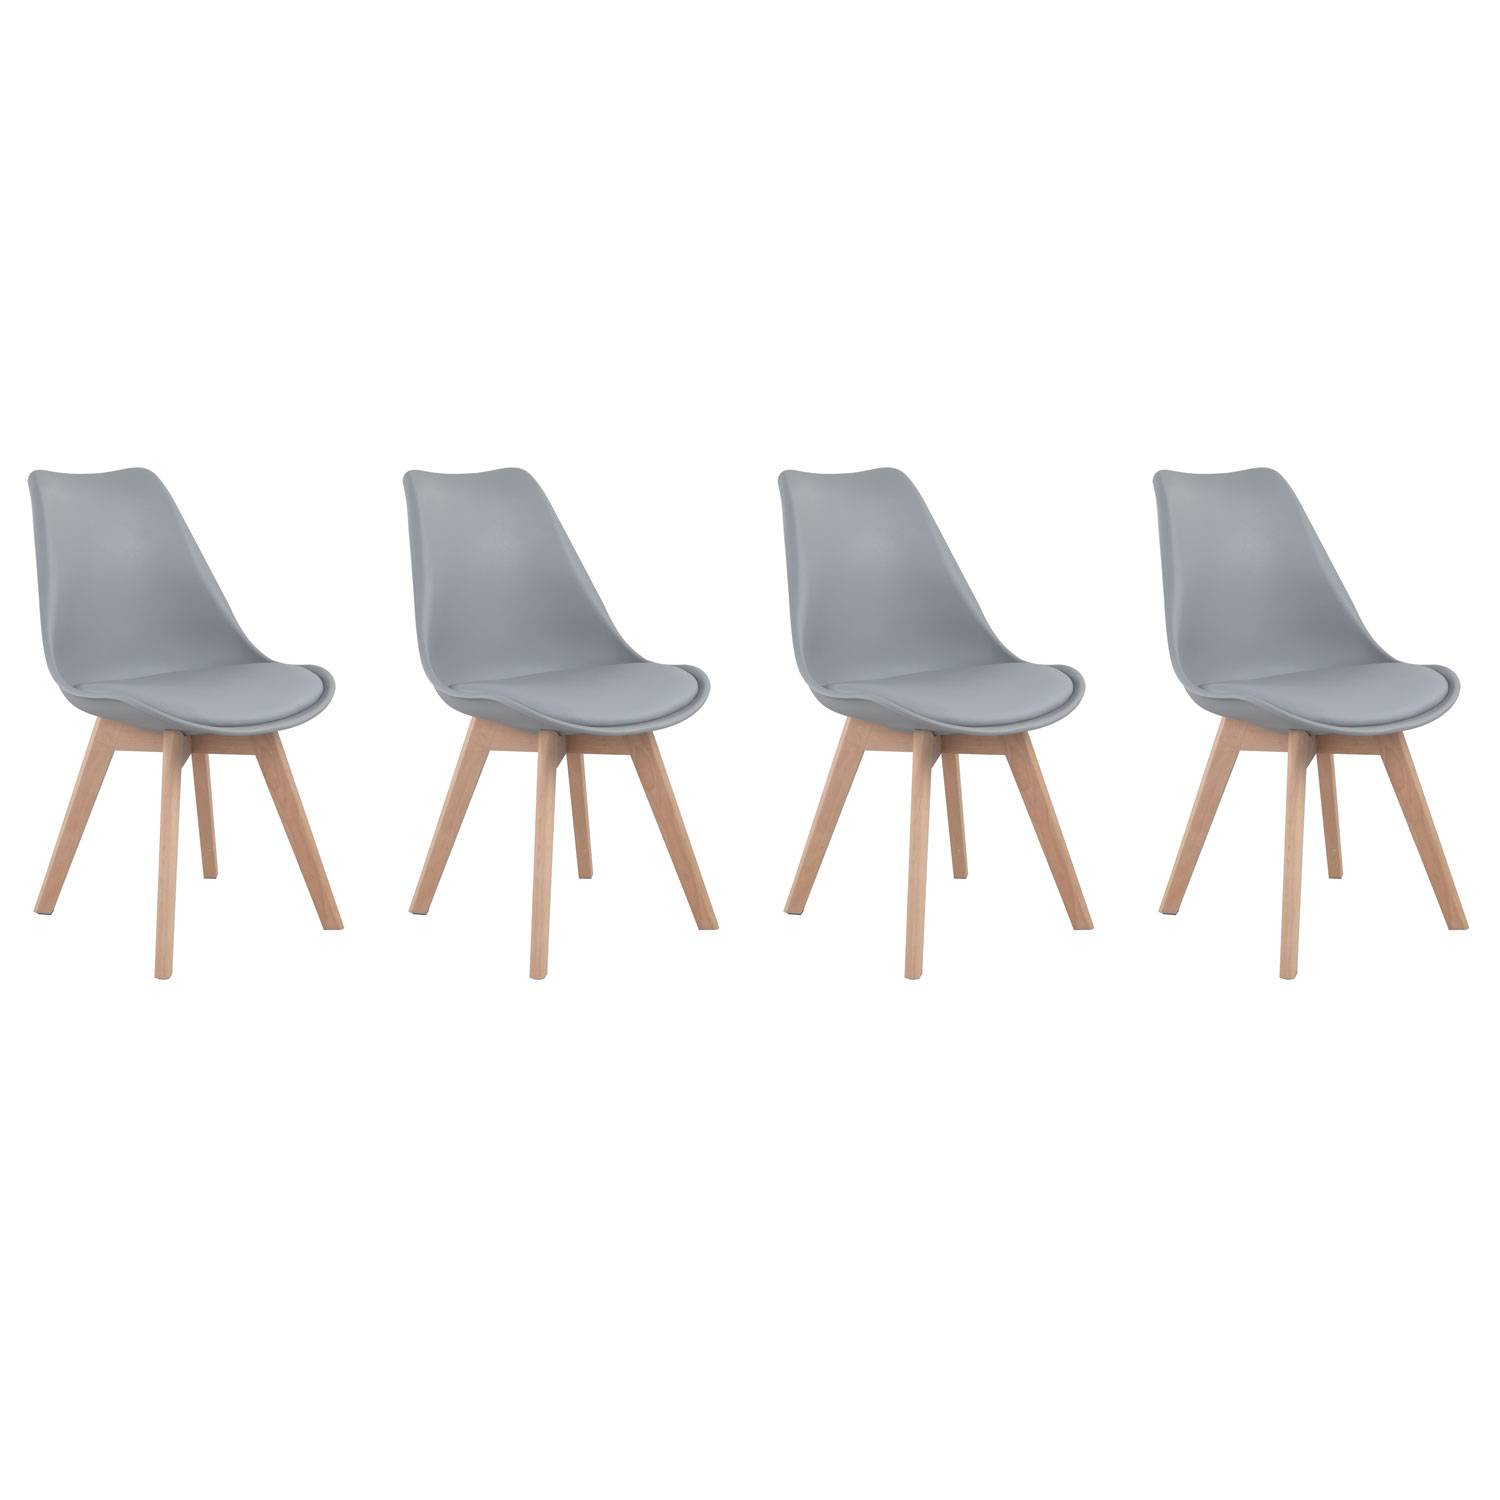 Clair Gris Lot Chaises F7v6yybg Scandinave 4 Grisesde WEbeH29DYI